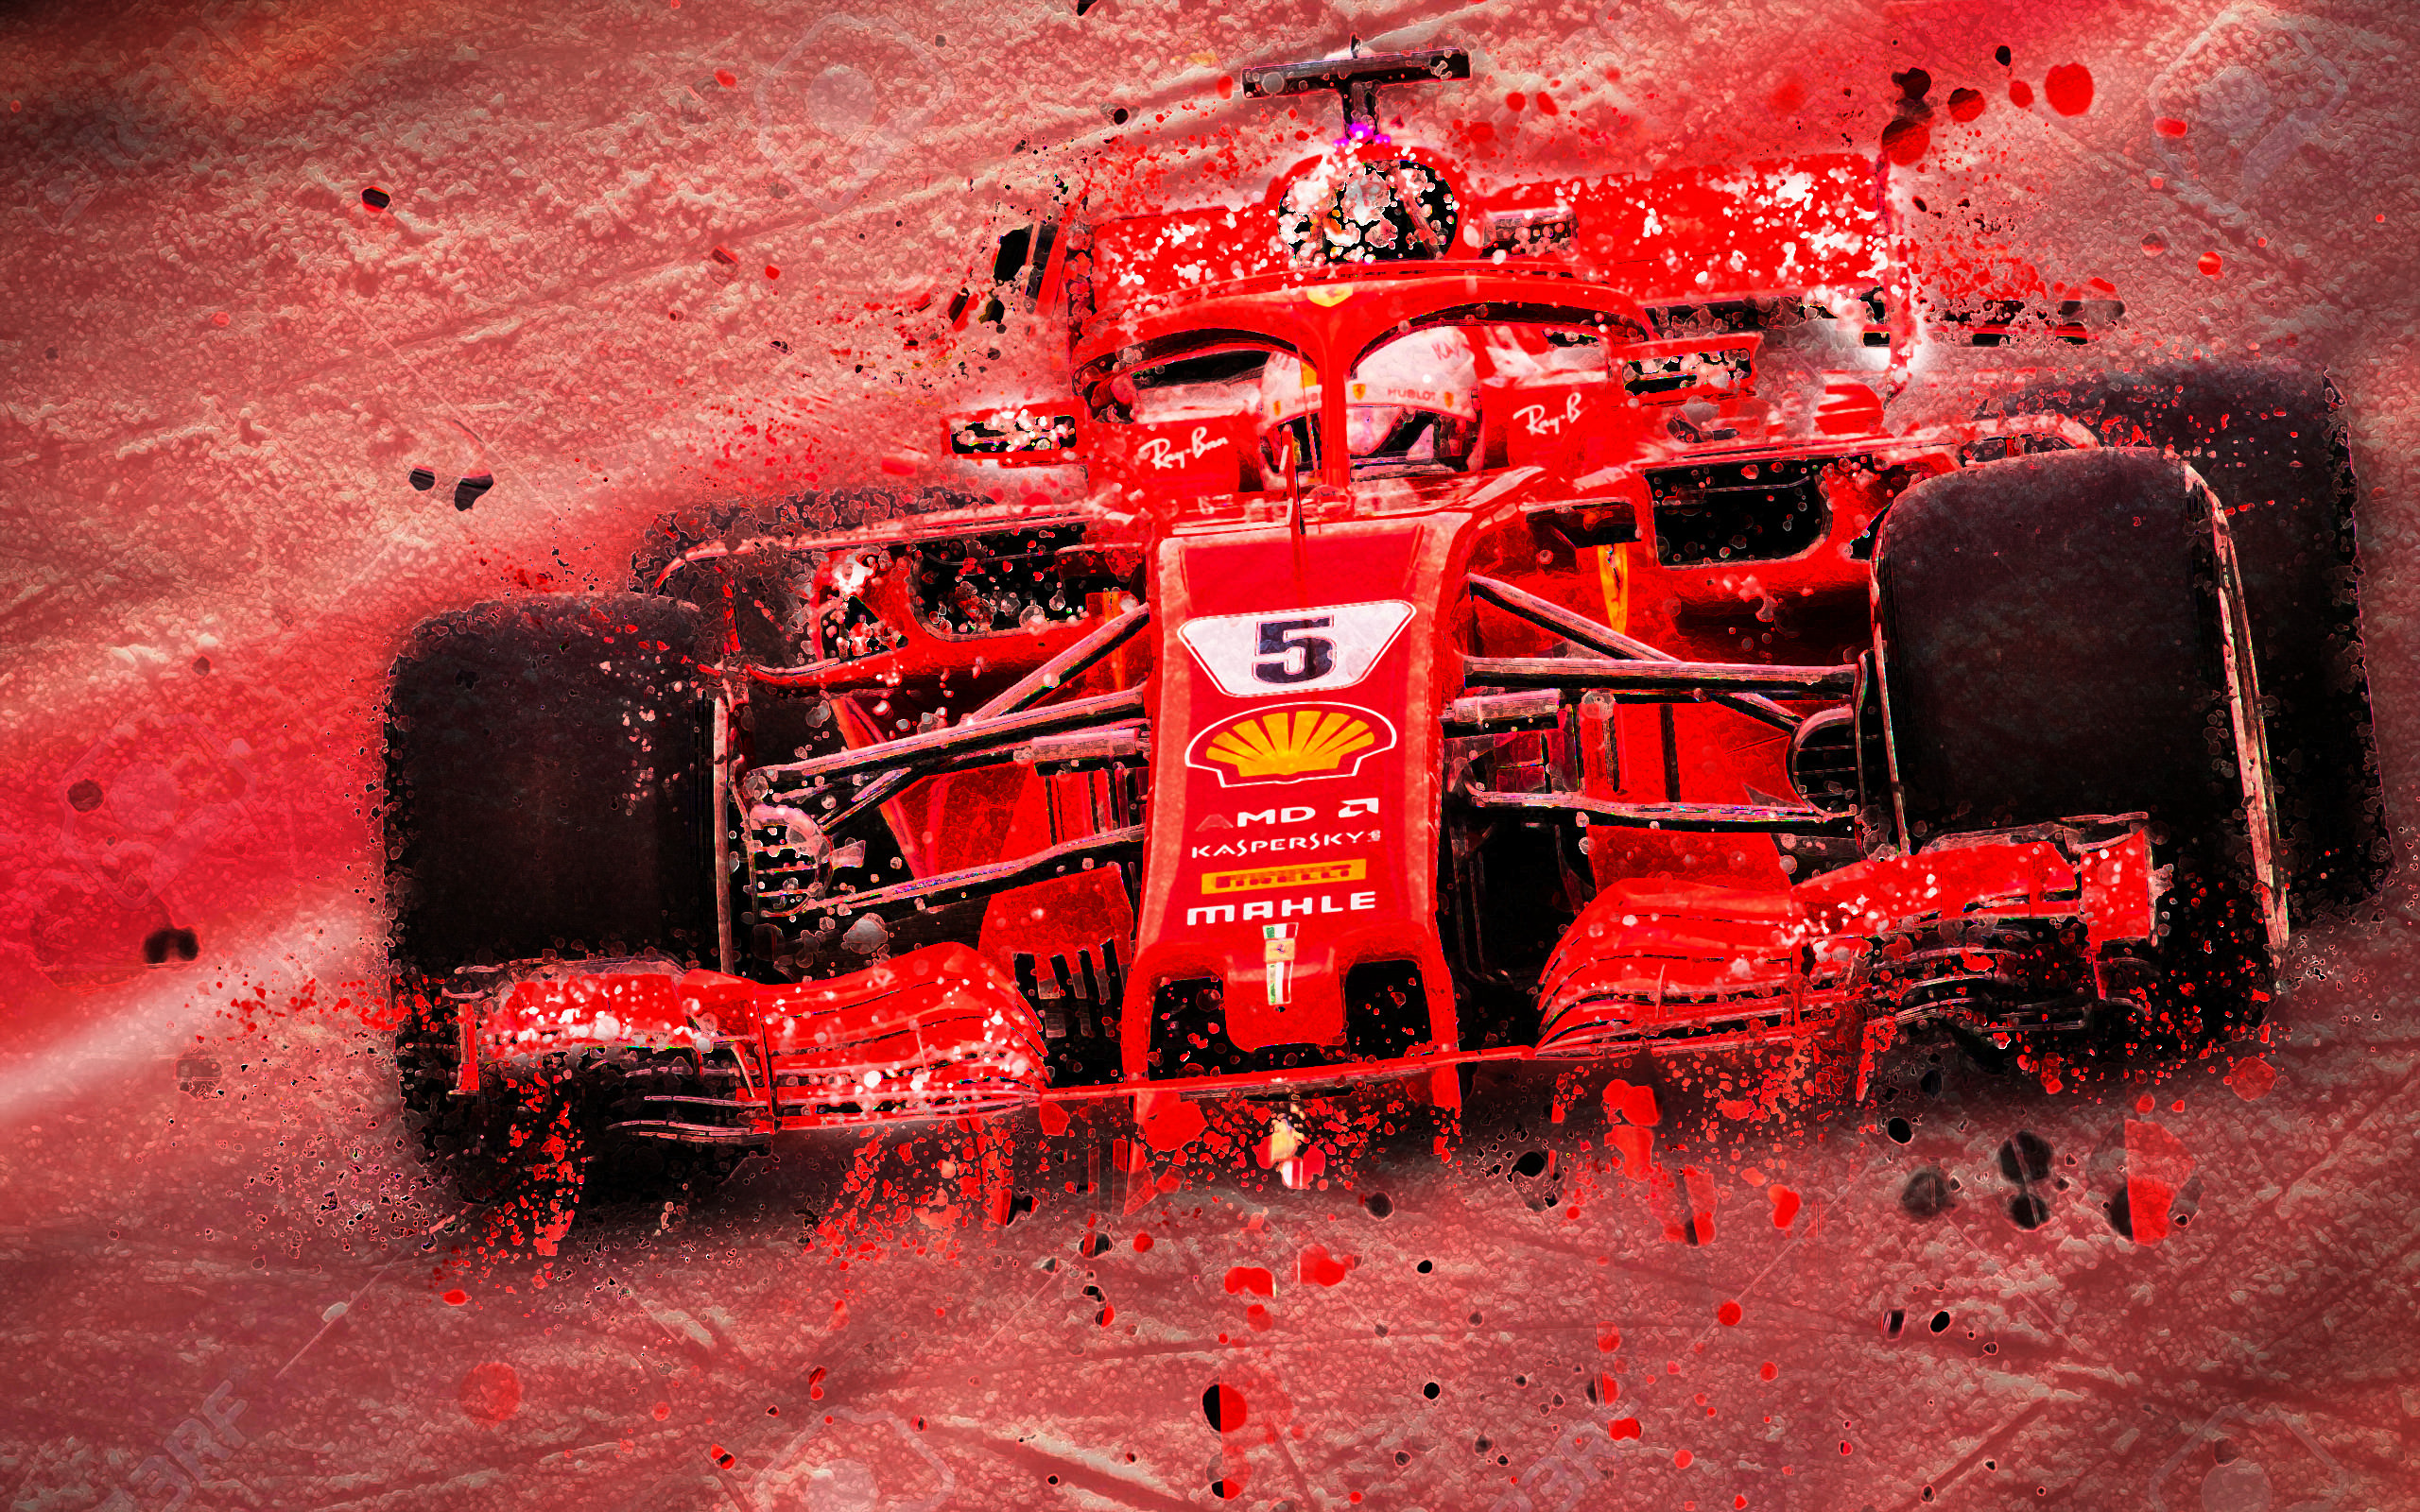 F1 Ferrari Wallpapers Album On Imgur 2560x1600 Download Hd Wallpaper Wallpapertip